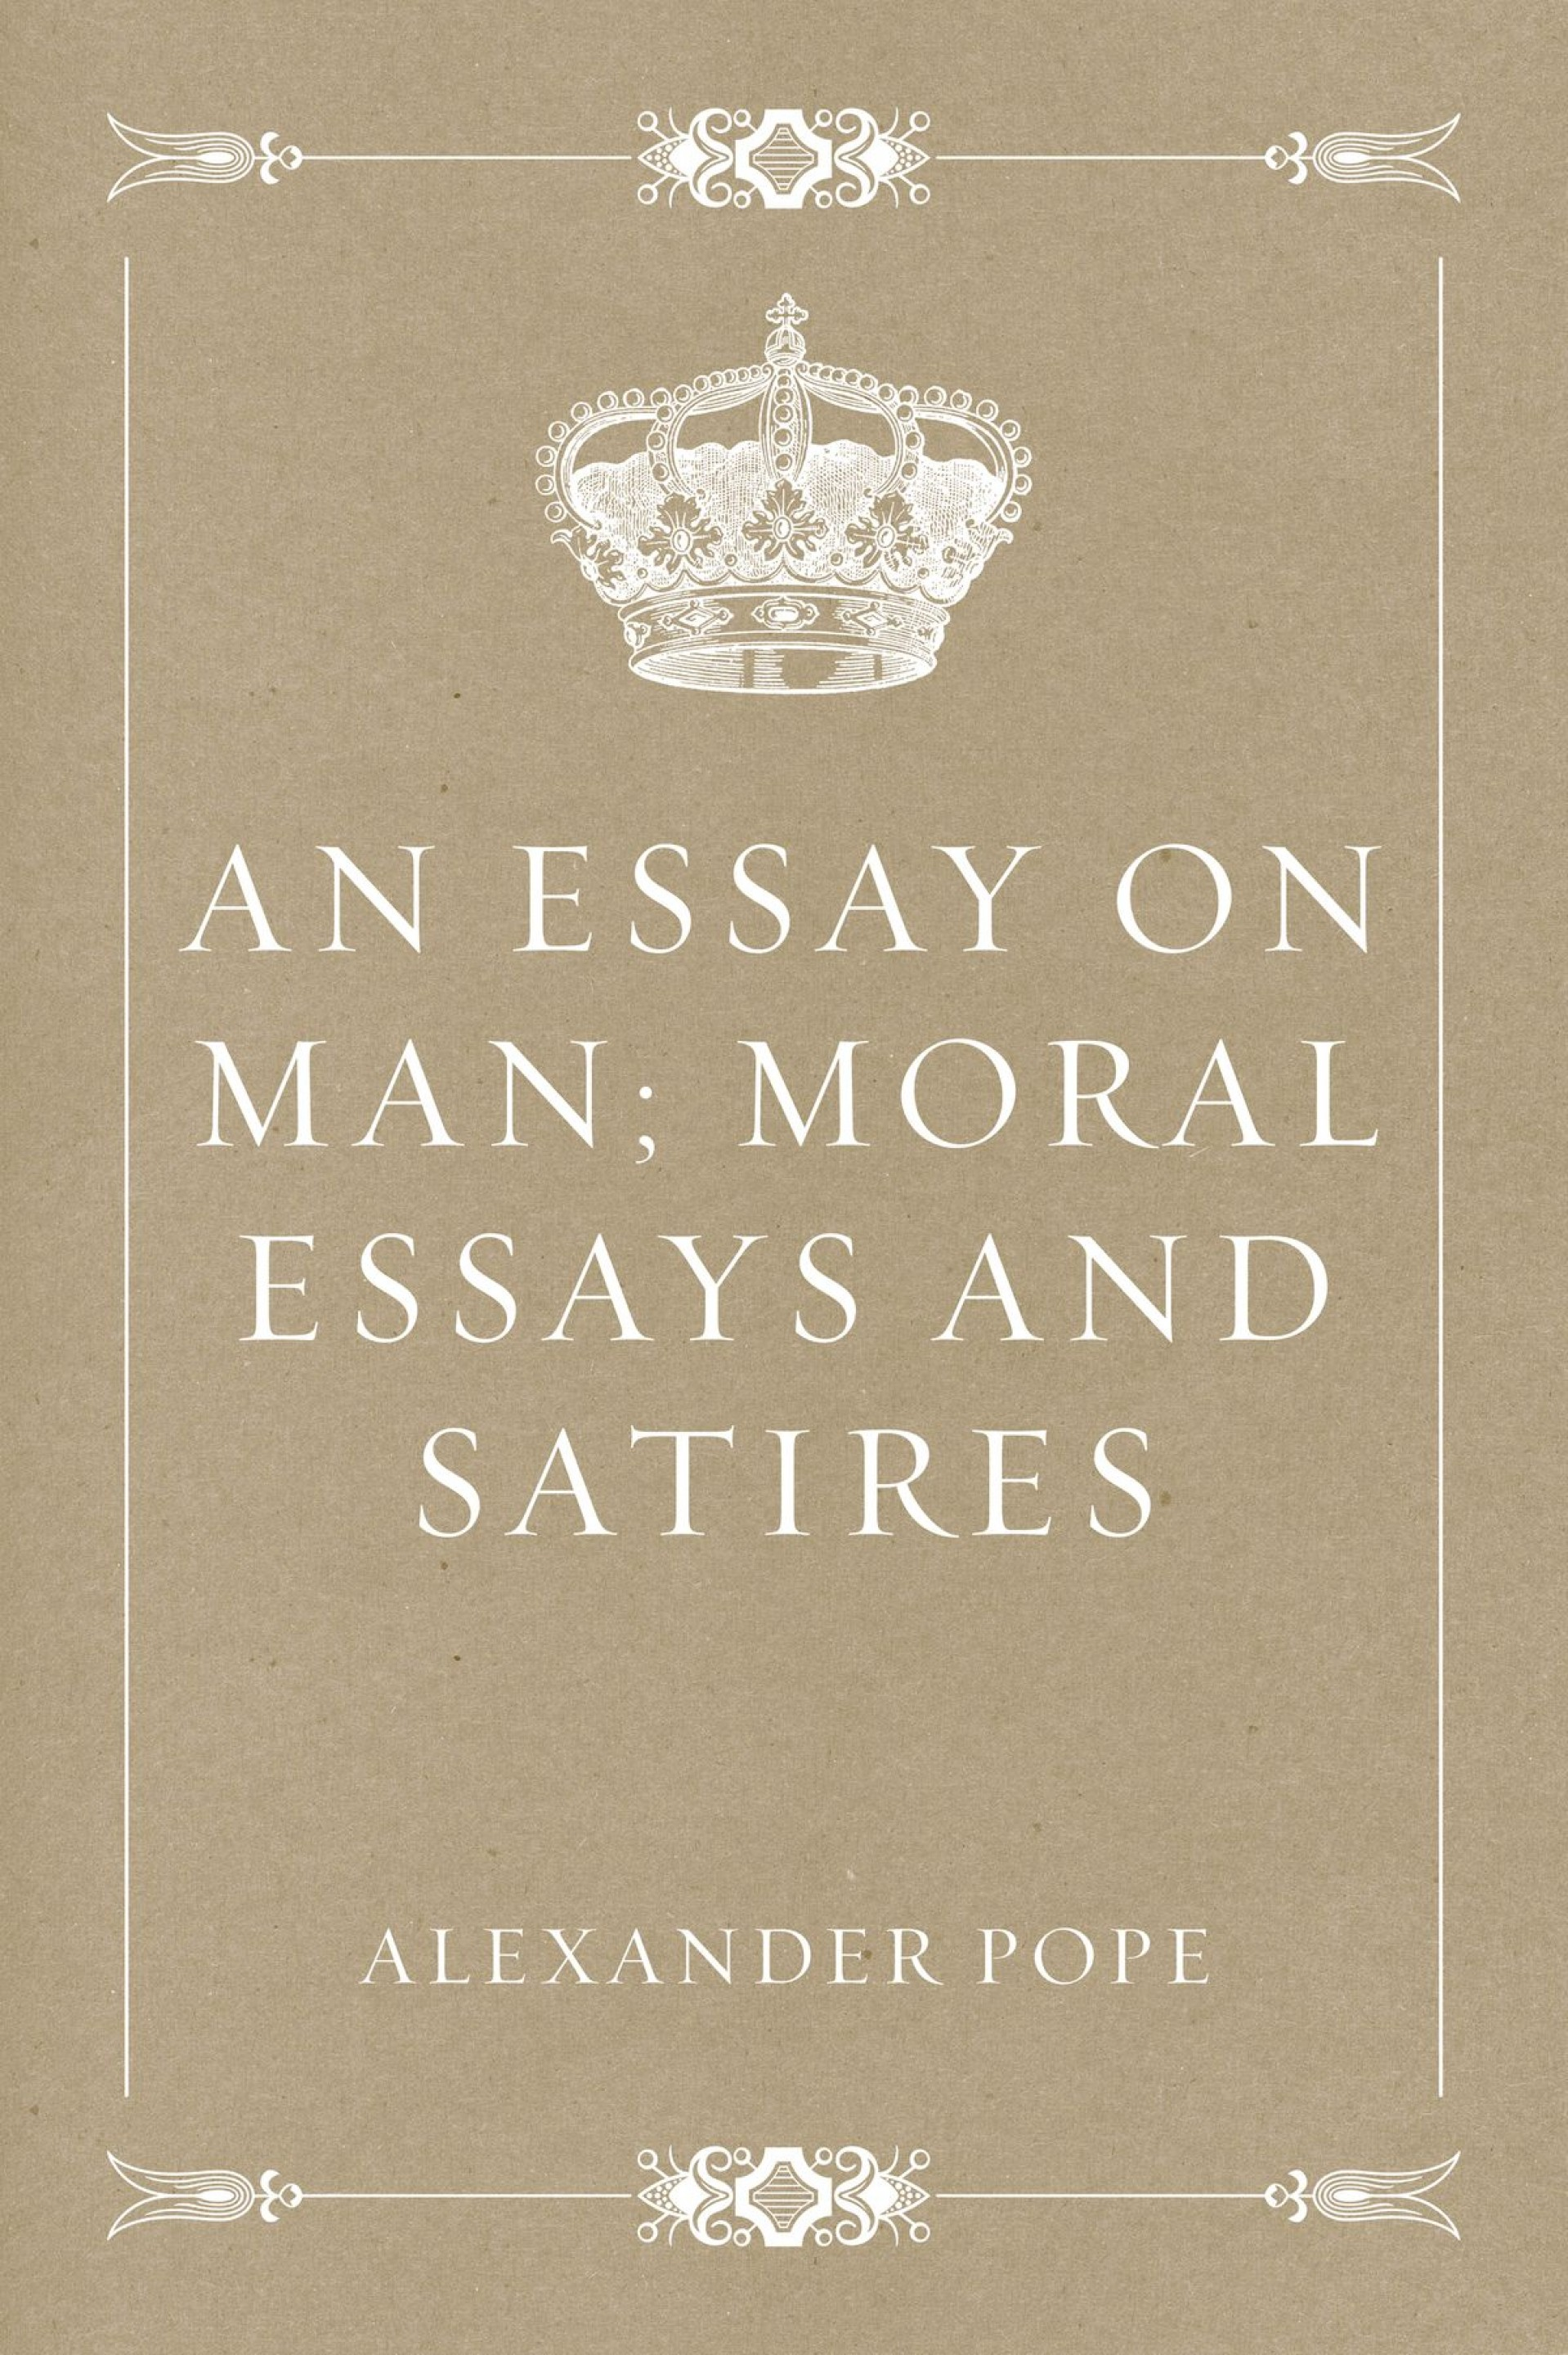 004 Essay Example On Man An Moral Essays And Satires Stirring Questions Manifest Destiny Analysis Pdf Argumentative 1920